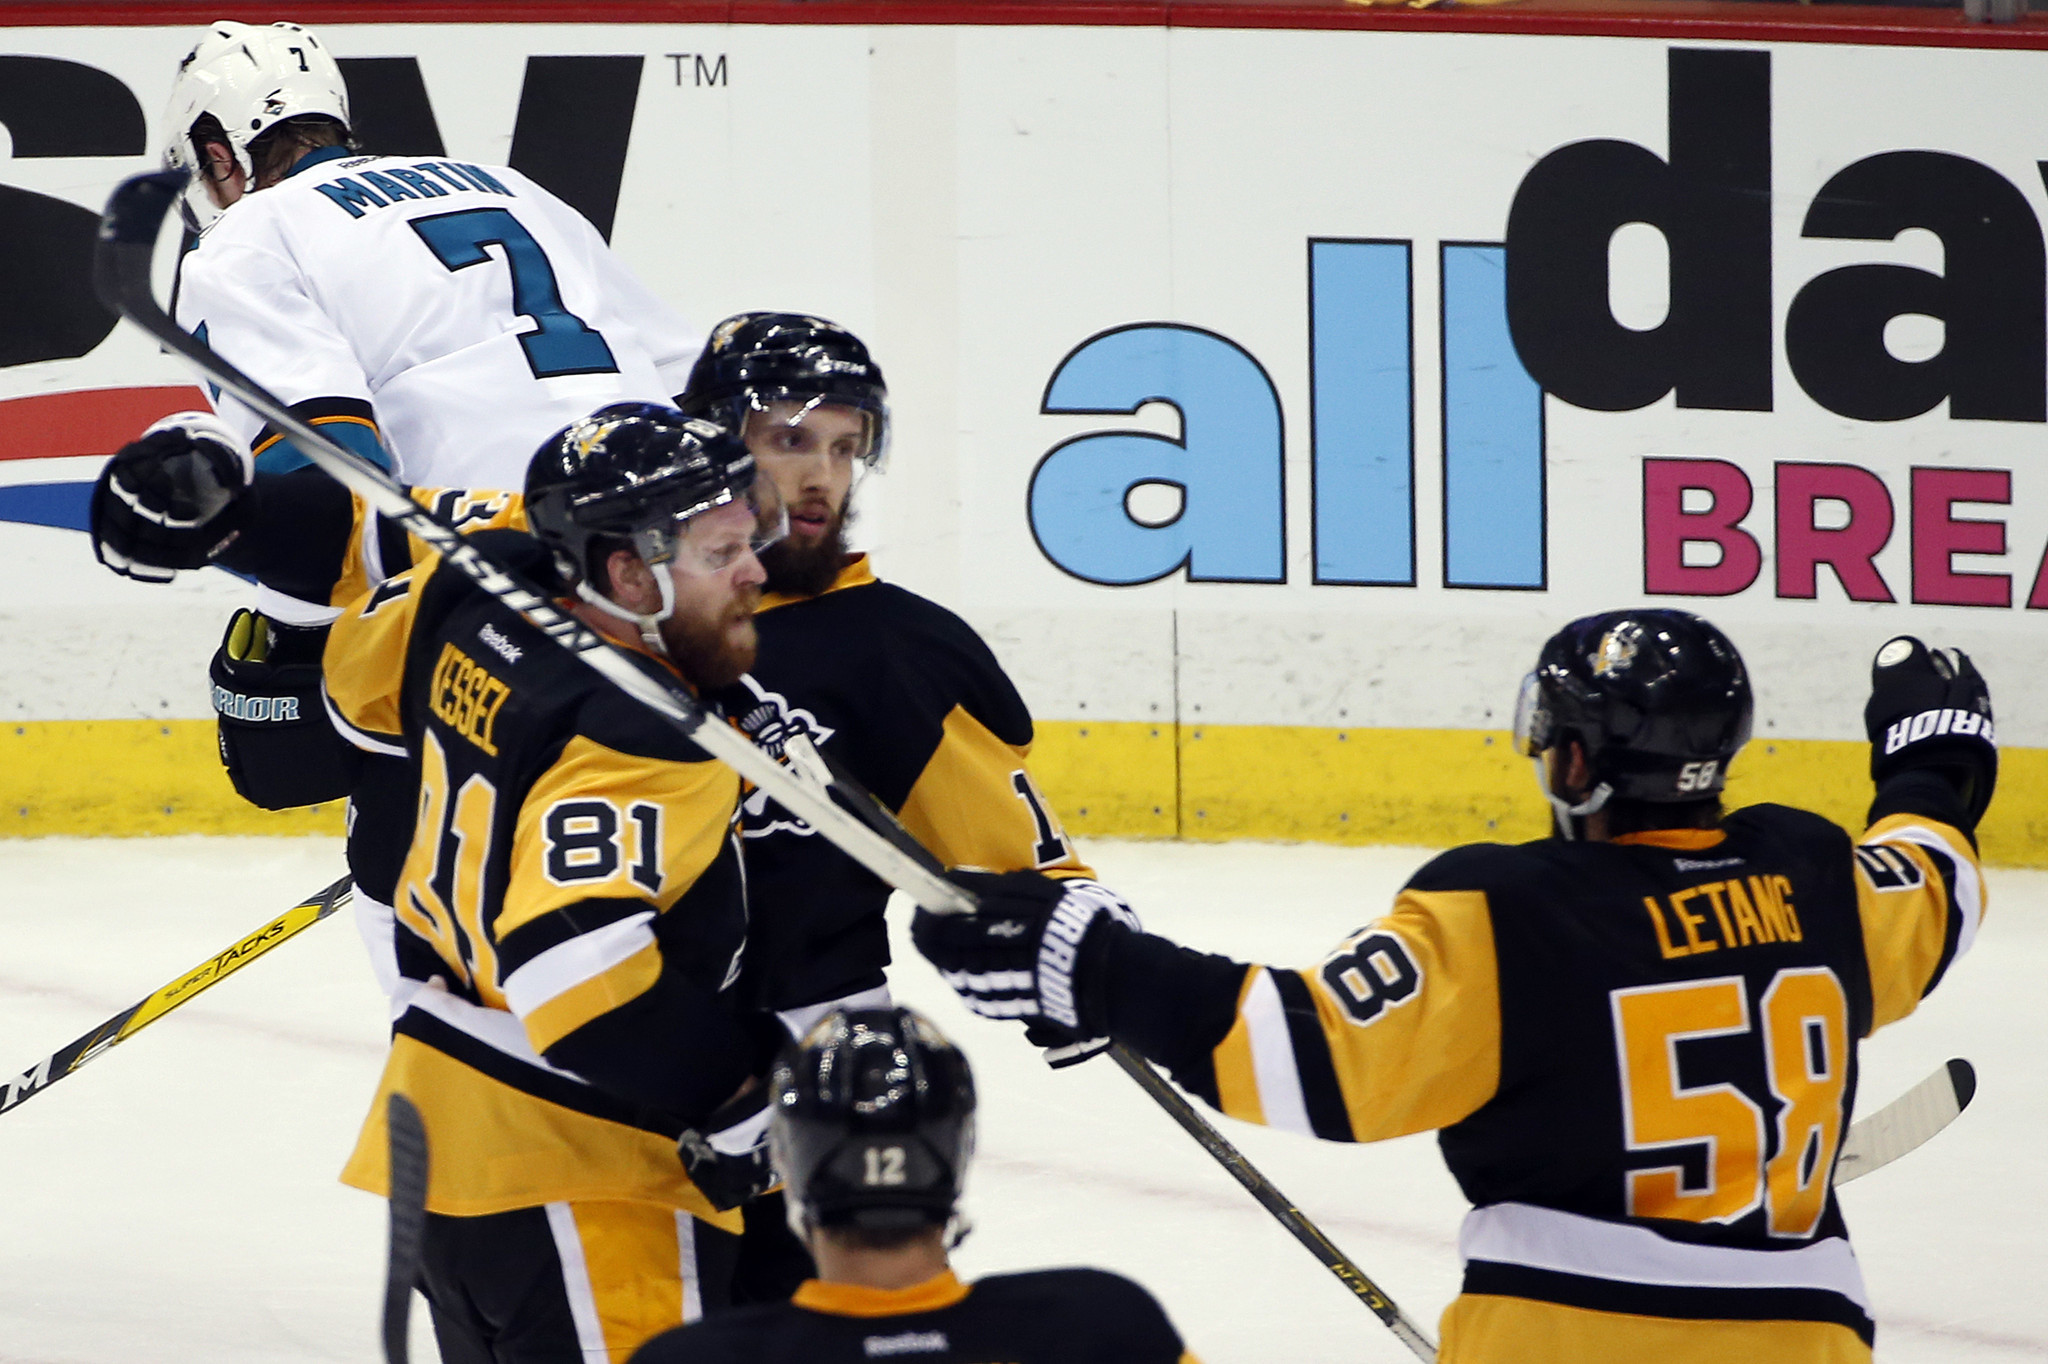 Penguins edge Sharks 3-2 in Game 1 of Stanley Cup Final - Chicago ... dbf557519